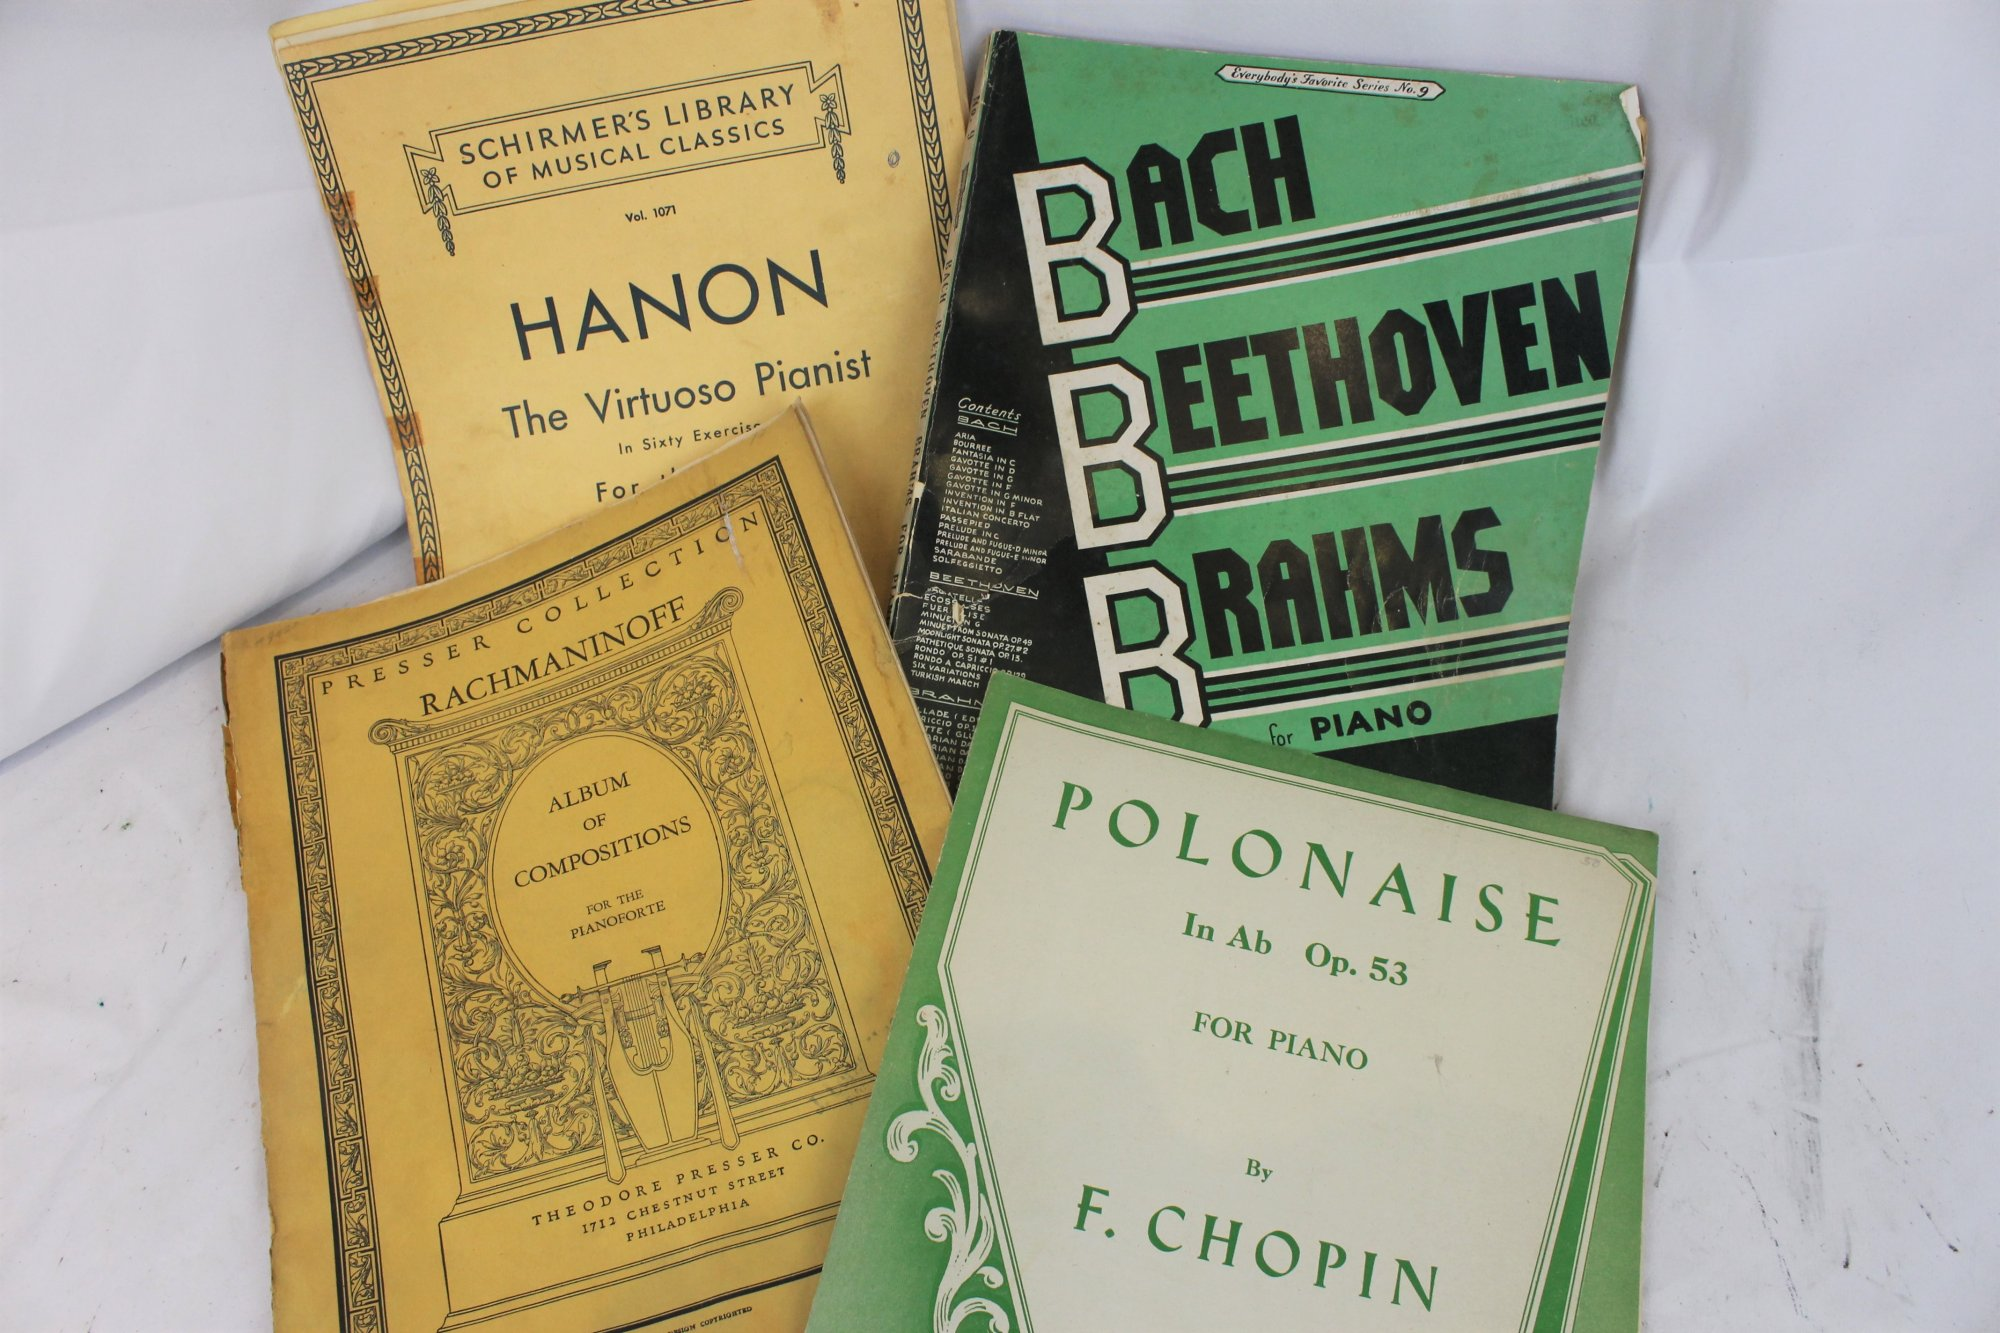 Lot of 4 Used Piano Books and Sheets - Advanced Pieces and Etudes Chopin Bach Brahms Hanon Rachmaninoff